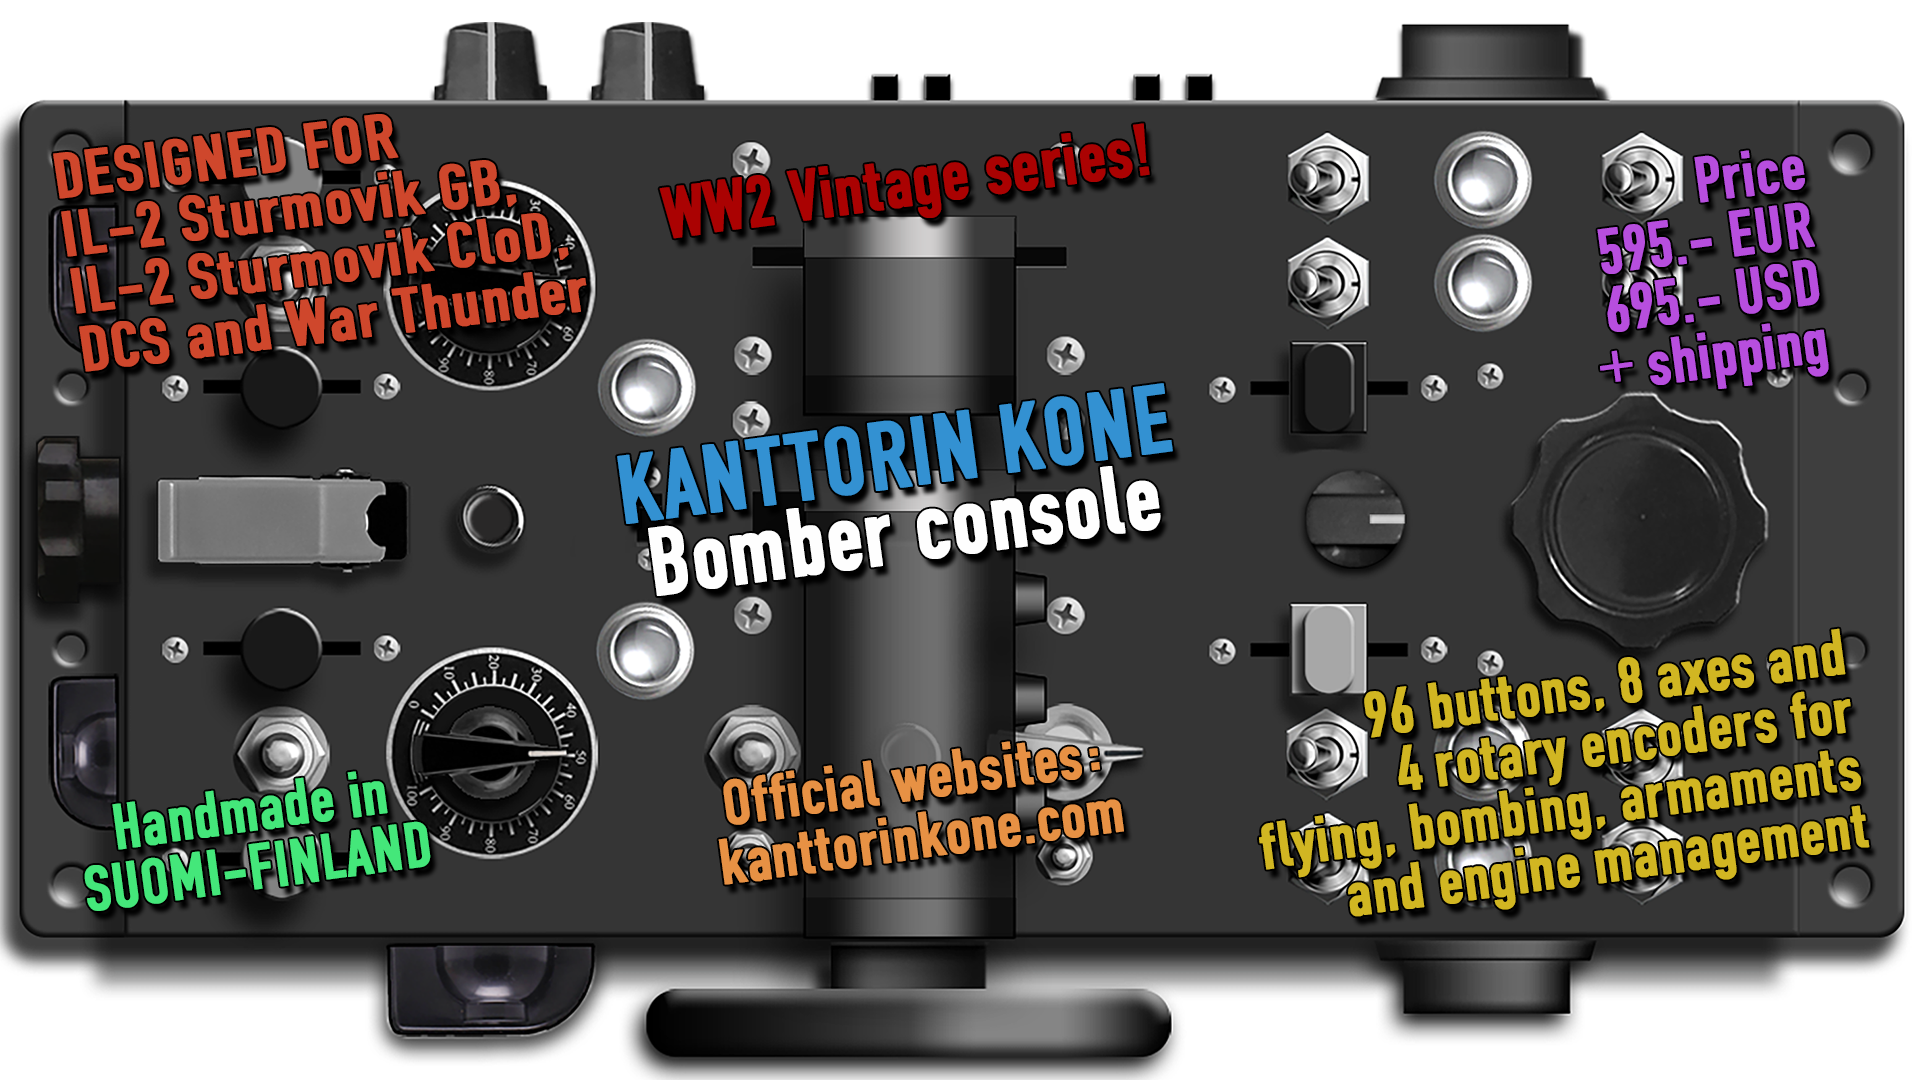 Kanttorin Kone Bomber Console - New extended bomber console model.